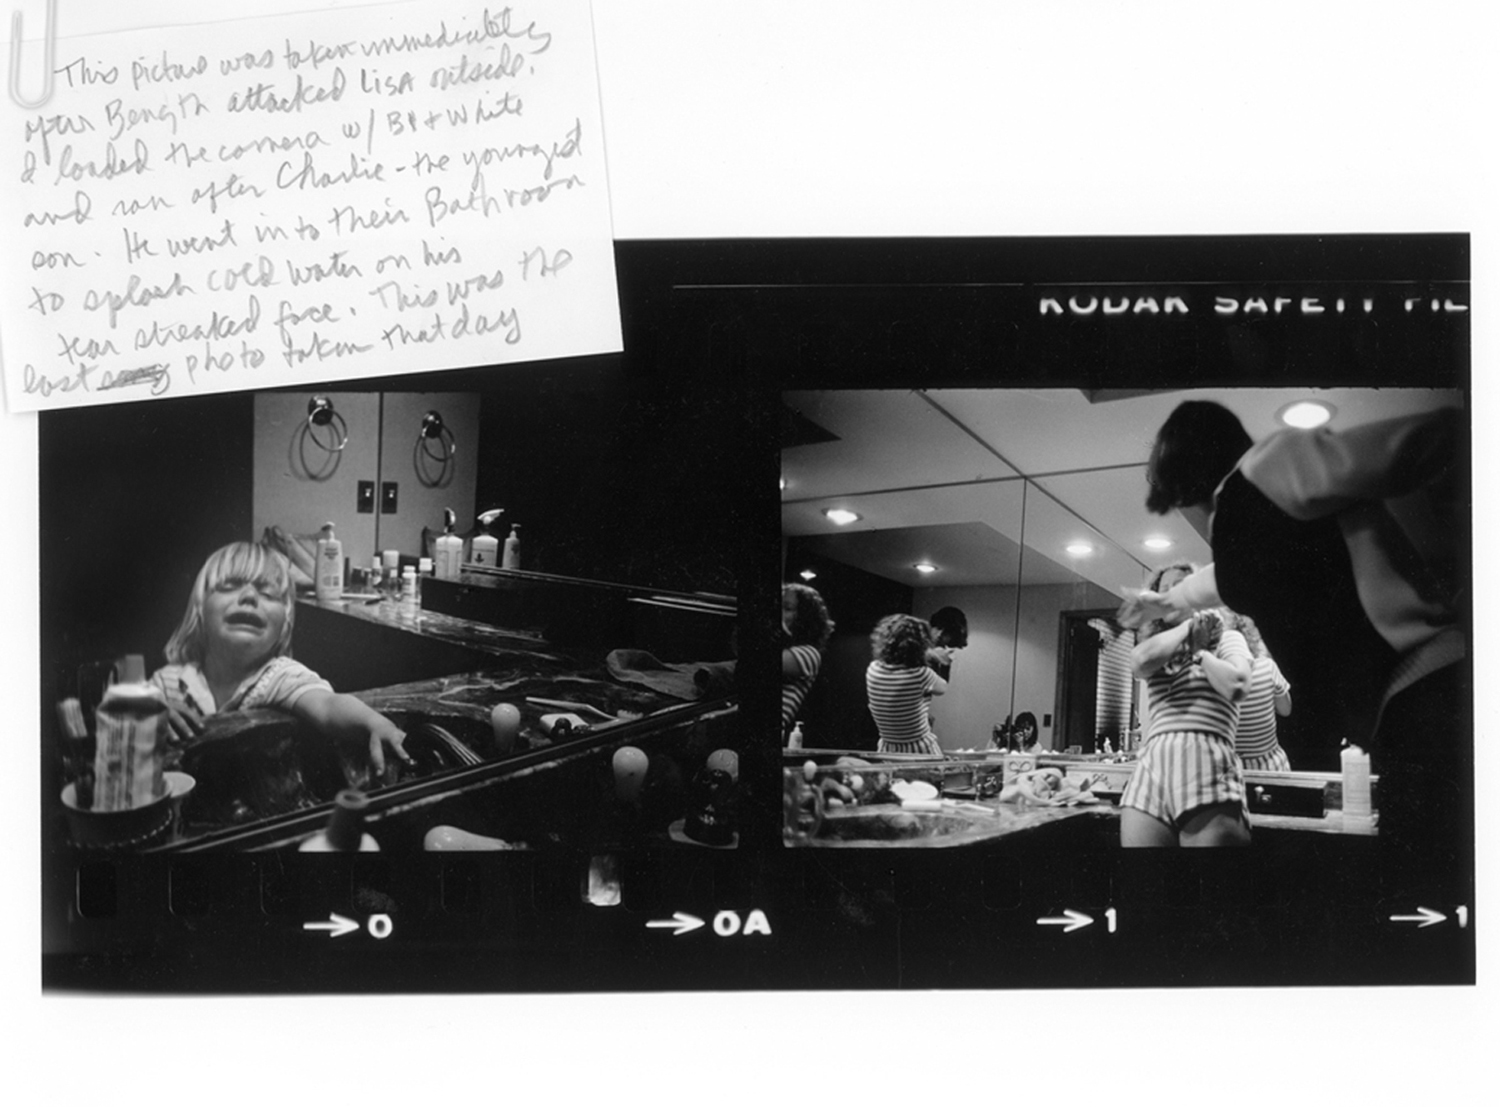 An image from the contact sheet of the day when Garth beat Lisa. Saddle River, N.Y., 1982.